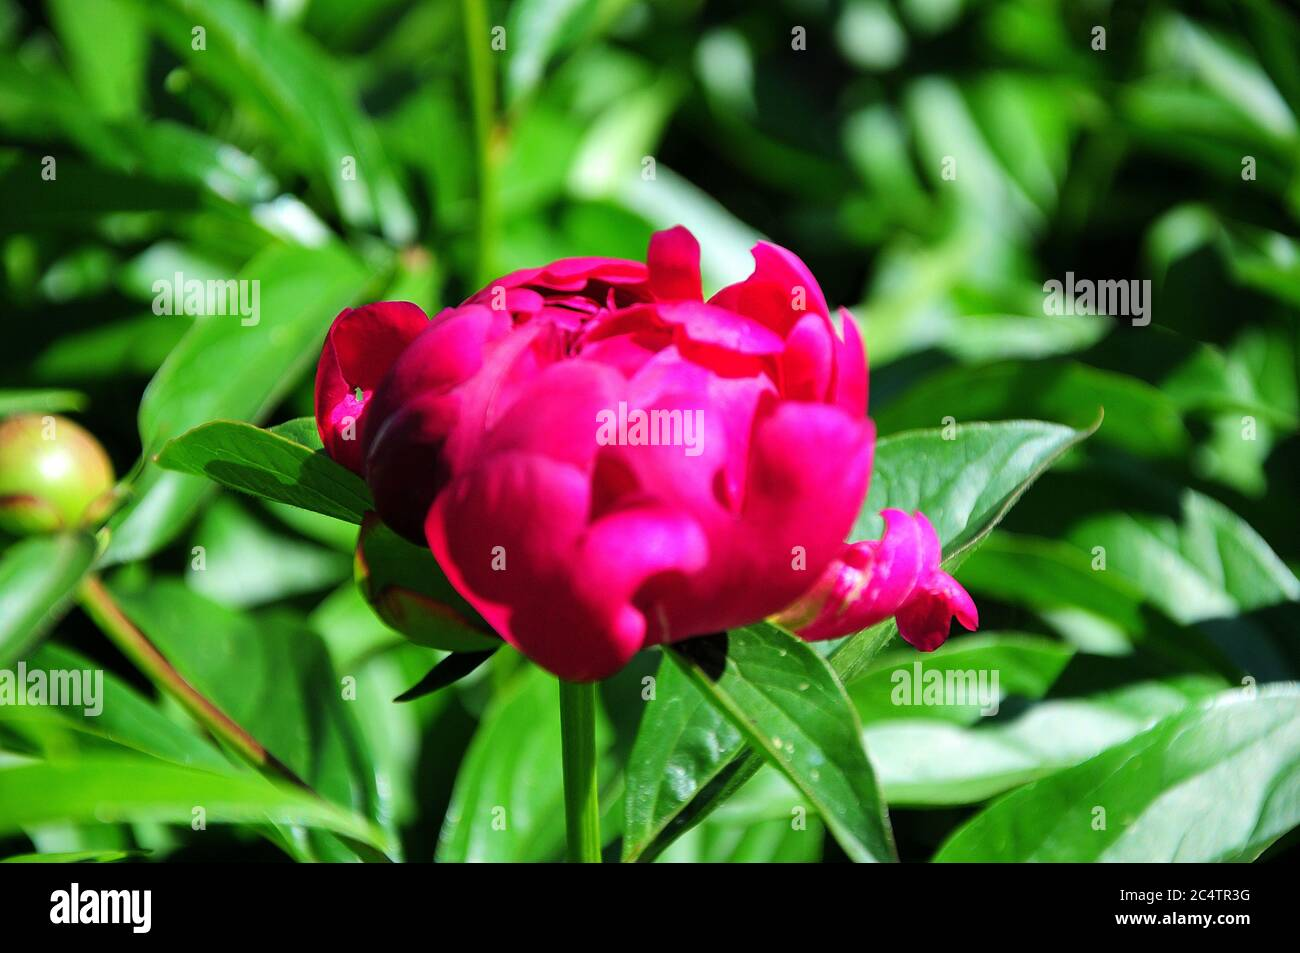 Brightly scarlet unopened peony bud on a branch in the garden on a sunny day. Close-up. Stock Photo